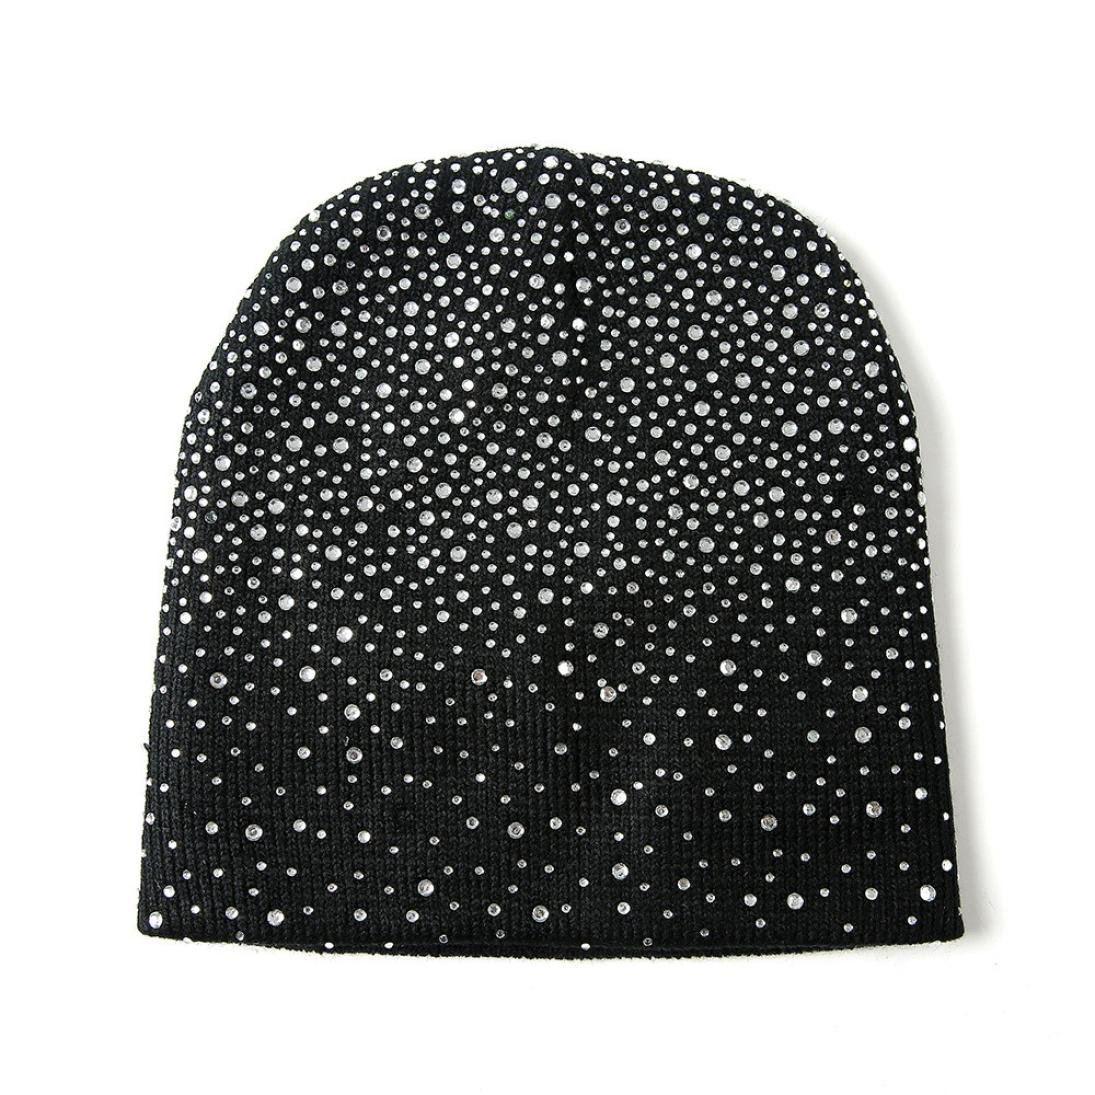 42f5caa987626 Women Ladies Baggy Beret Chunky Knit Knitted Braided Beanie Hat Ski Cap  with Diamond (Black) at Amazon Women s Clothing store